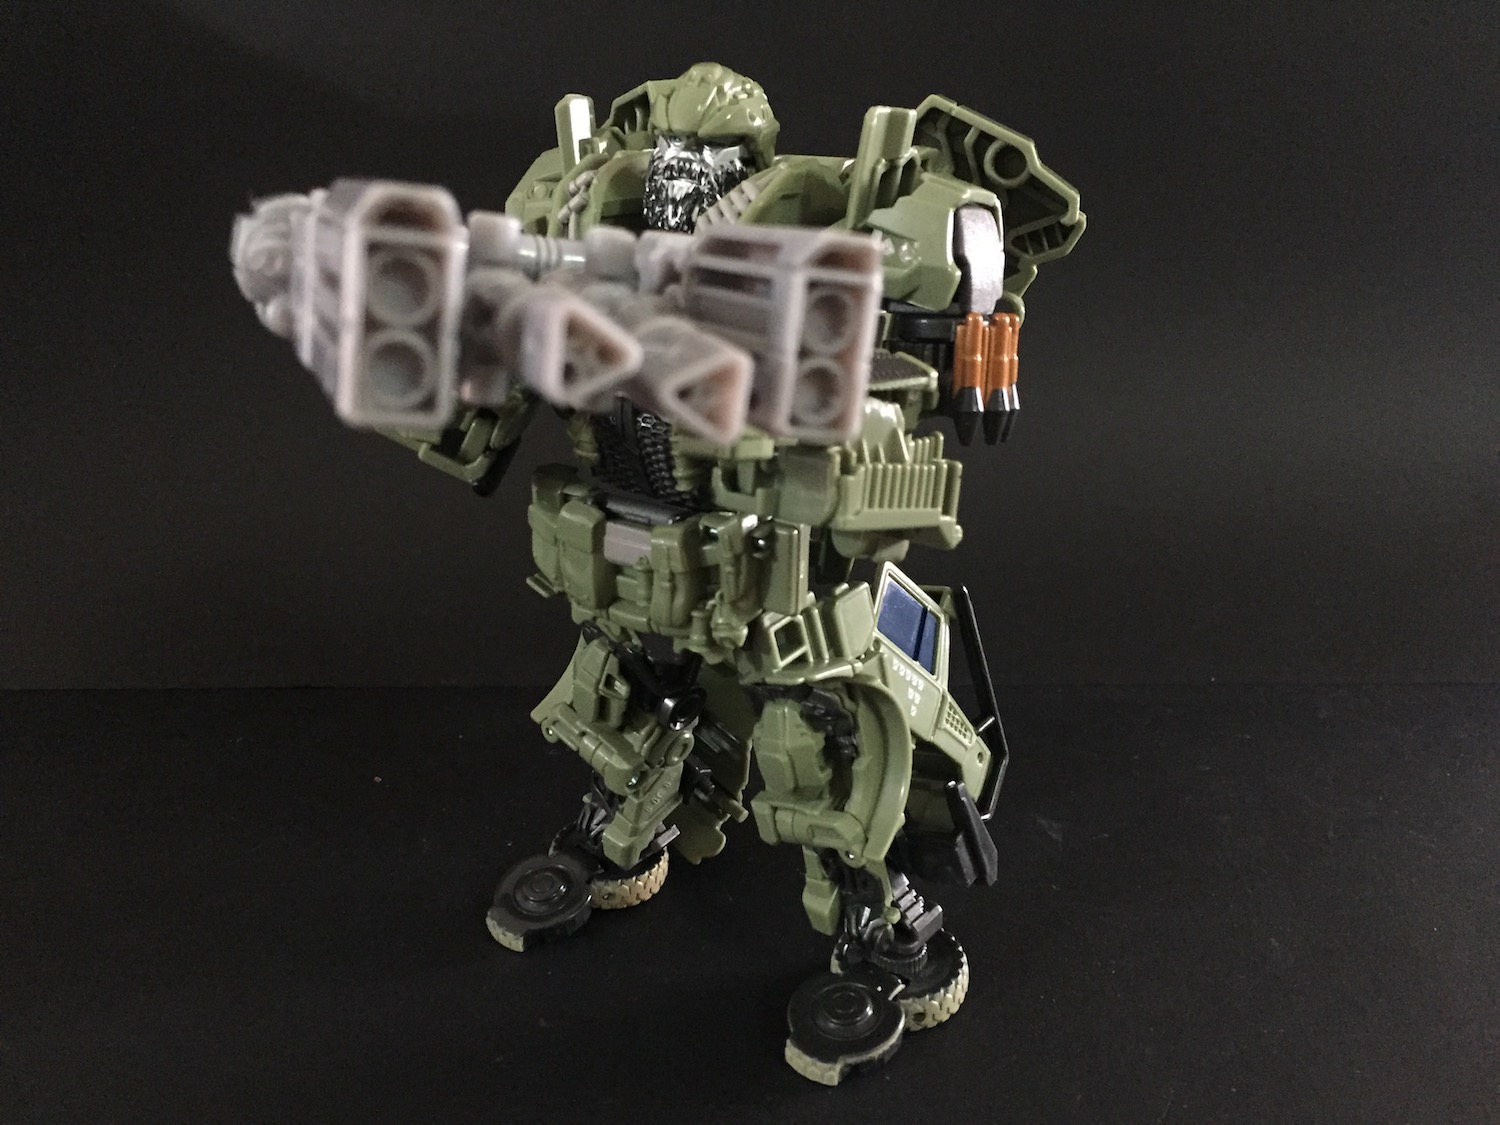 Hound, Voyager Class. (Transformers: The Last Knight, Premier Edition)